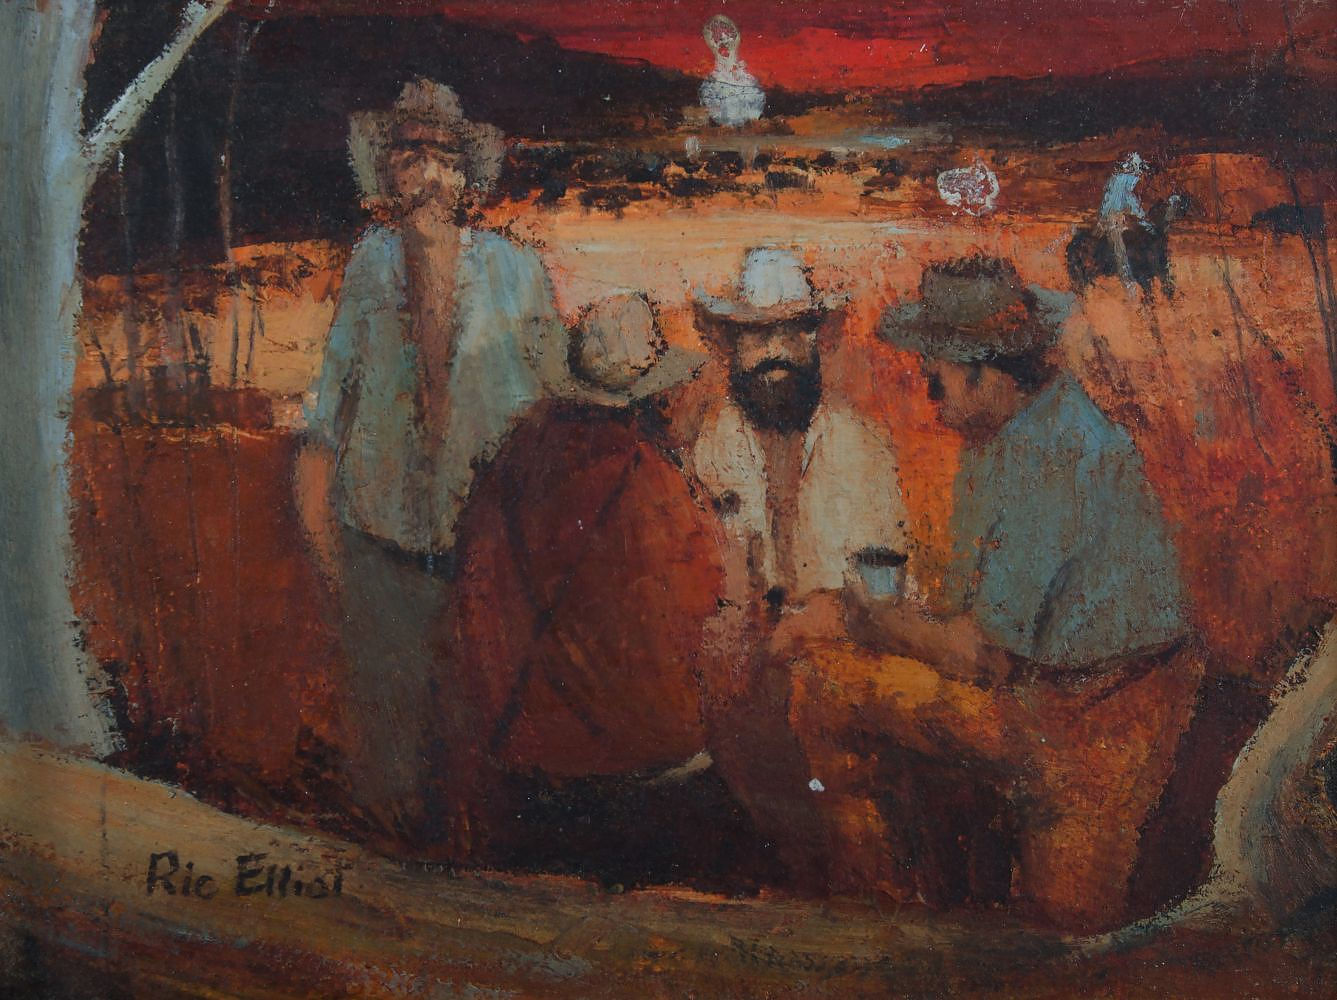 'ELLIOT, Ric (1933-1995) Drovers Camp Oil on Board'